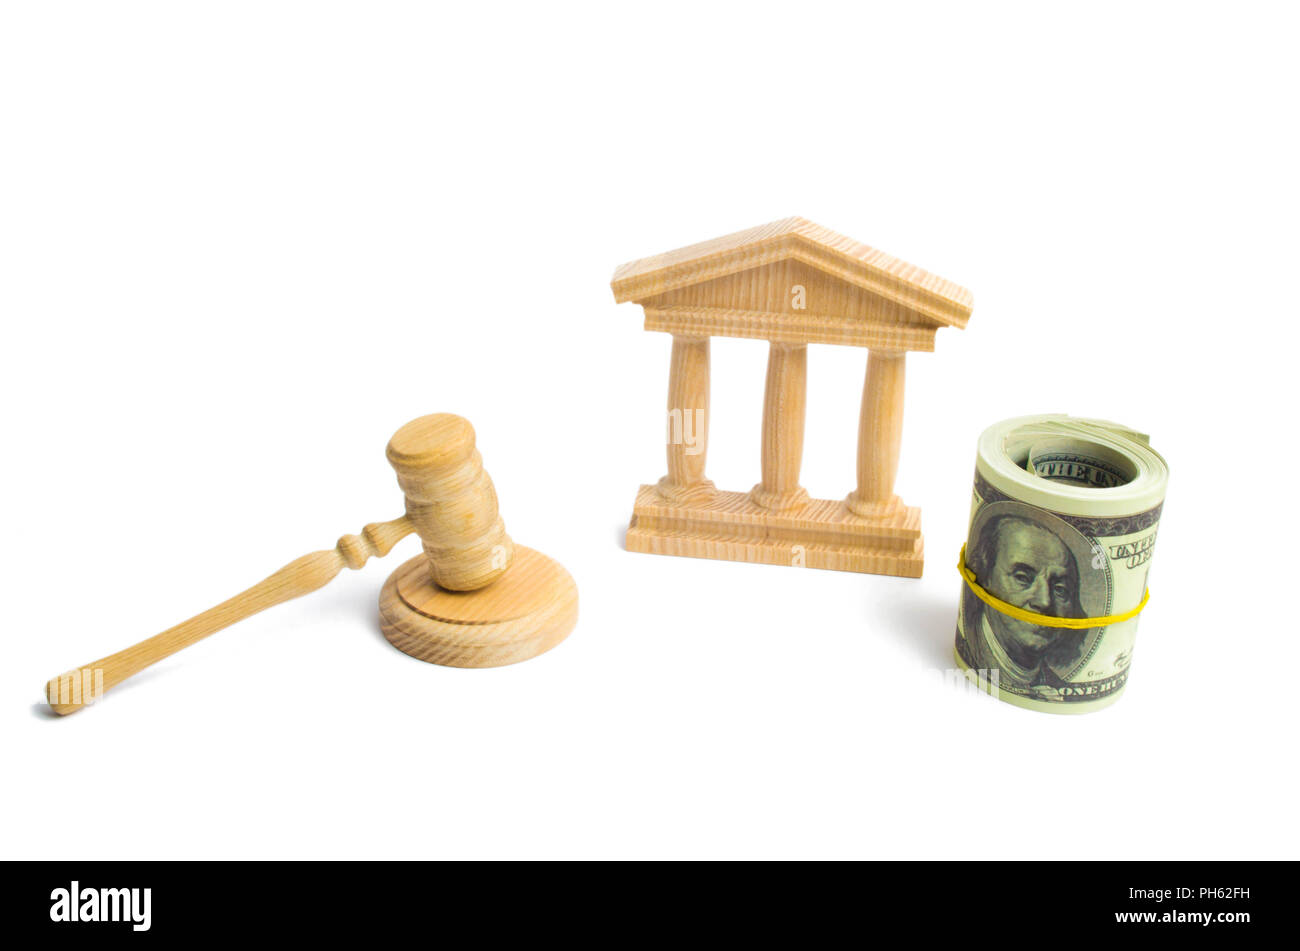 wooden government building Judge's hammer and money, on a white background. concept of state administration and economic institutions. Municipality, g - Stock Image